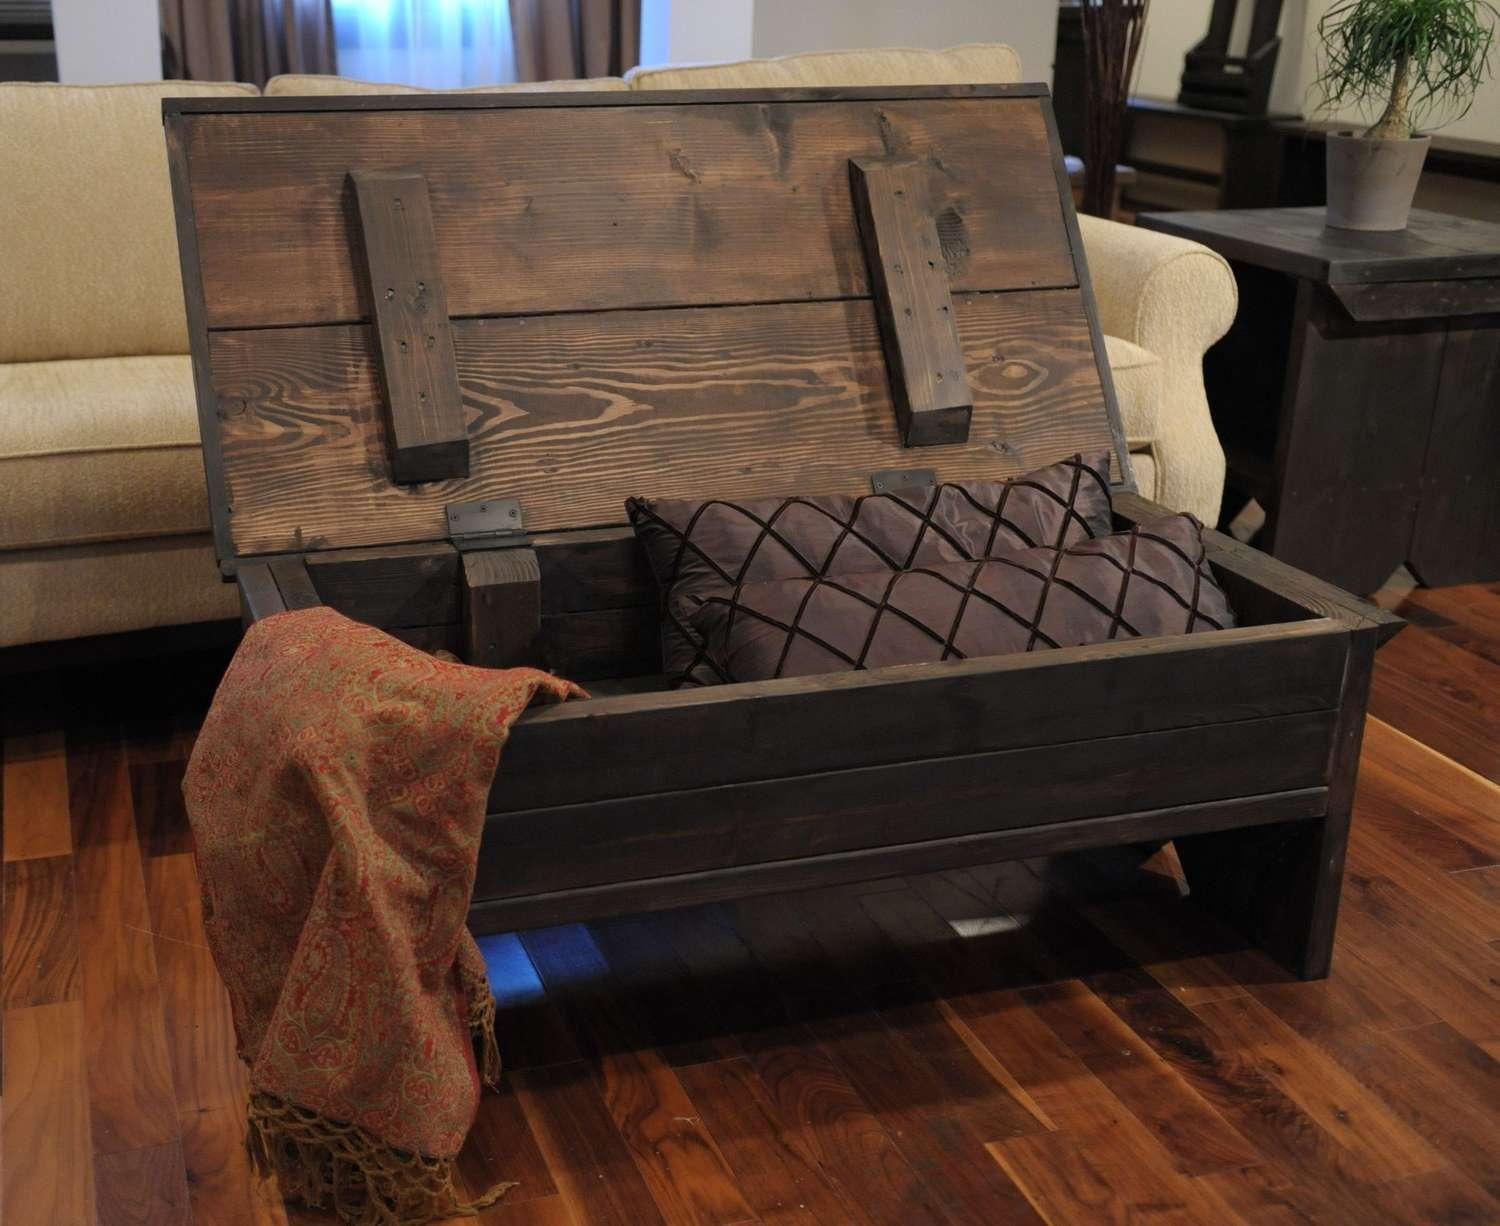 Well Known Hardwood Coffee Tables With Storage Regarding Coffee Tables : Attractive Top Rustic Storage Coffee Table Diy (View 19 of 20)